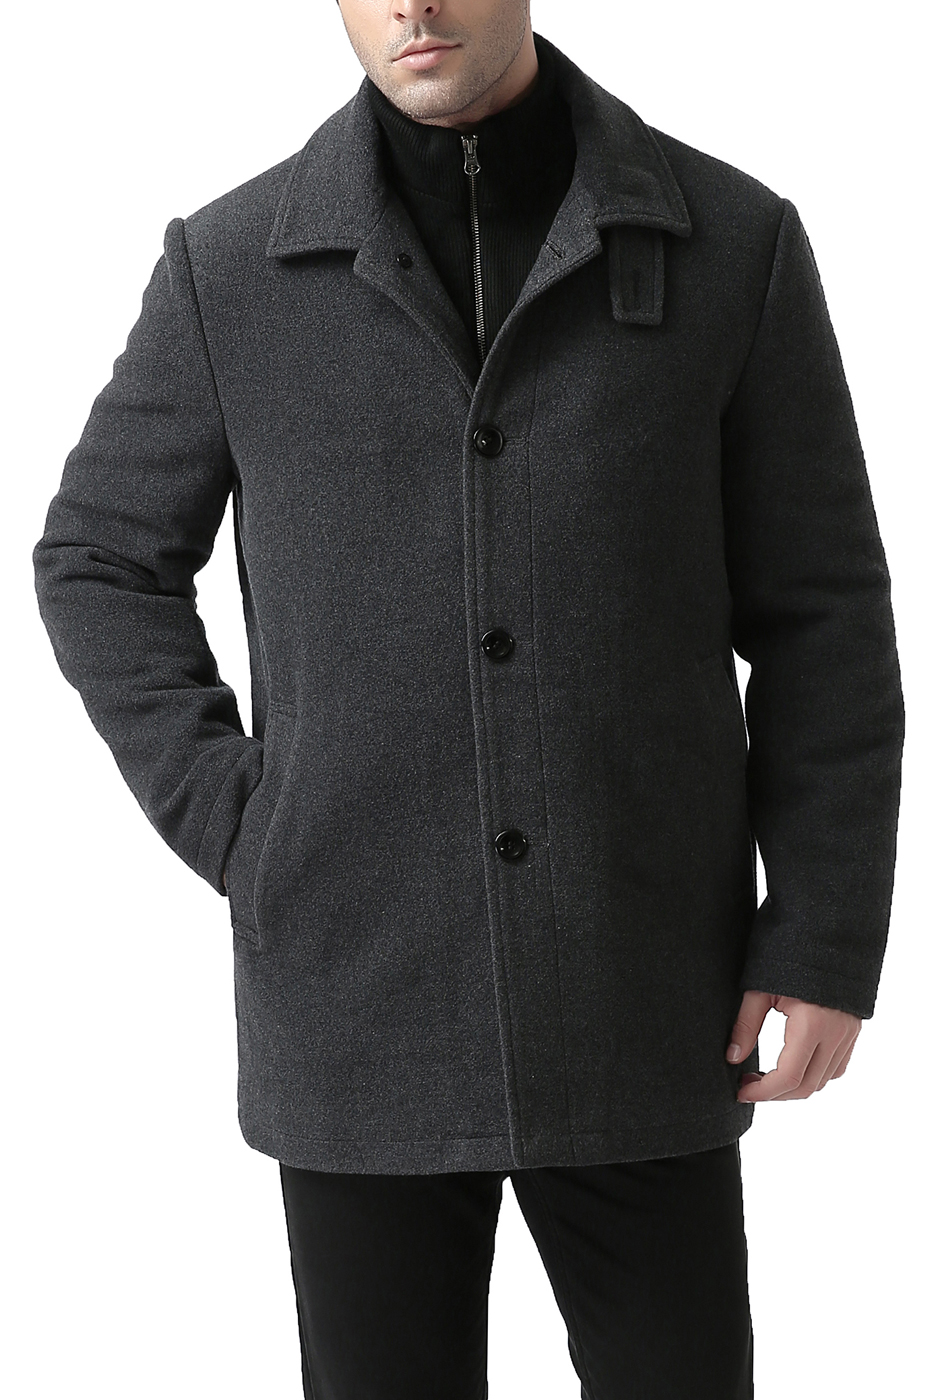 BGSD Men's 'Graham' Zip-Front Bib Wool Blend Car Coat by